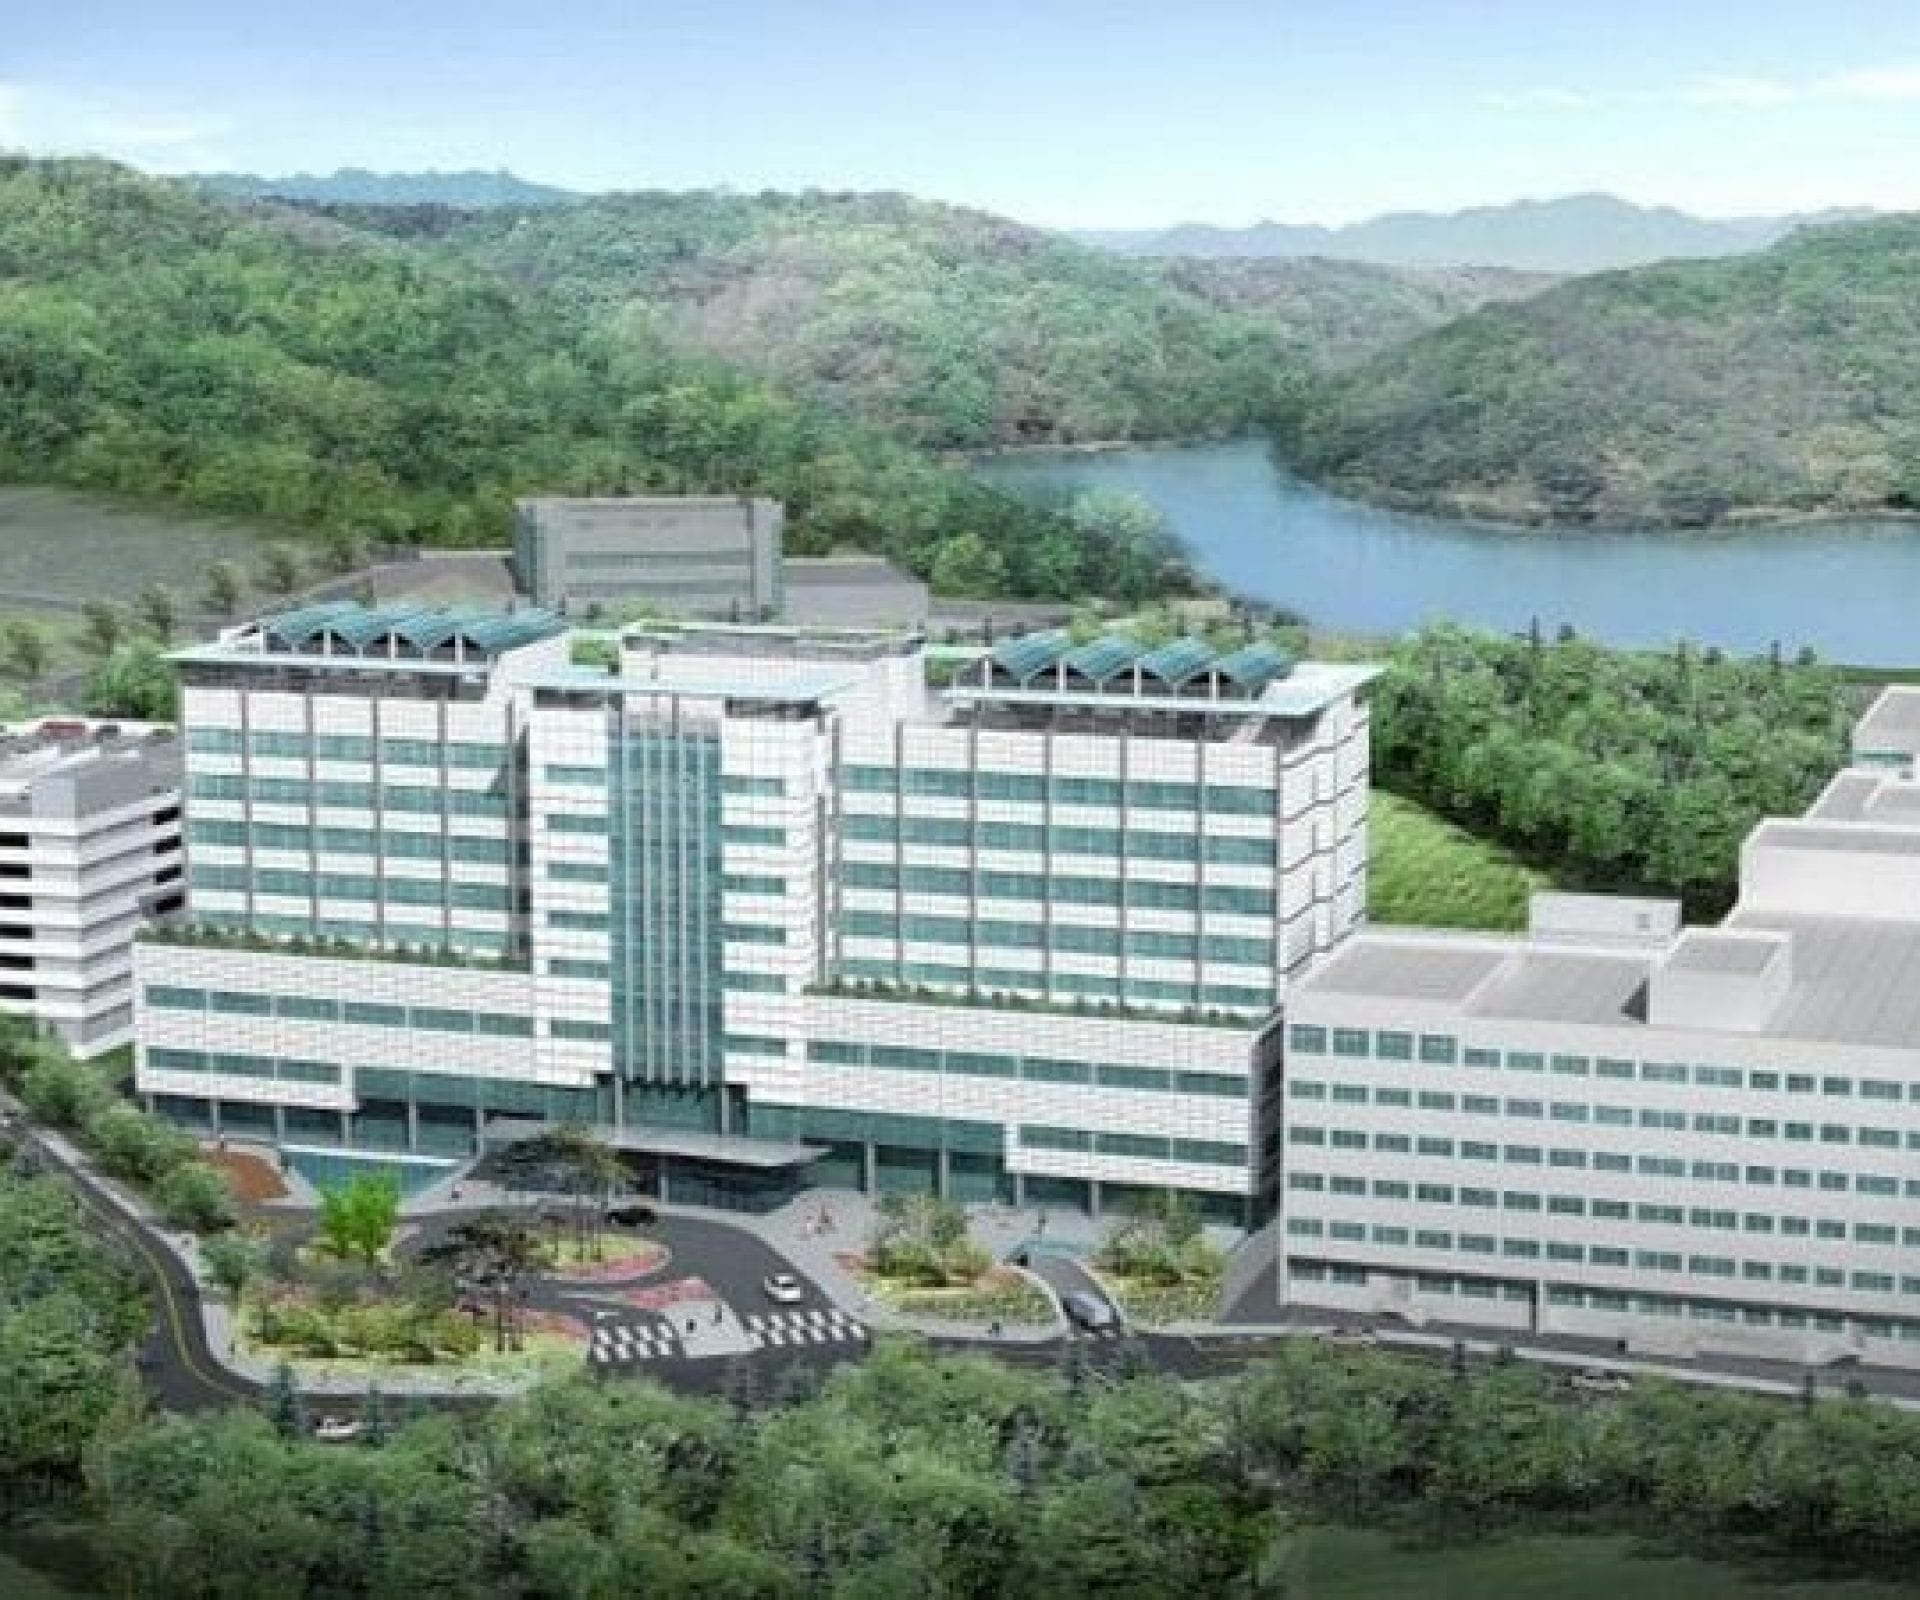 Ulsan University Hospital | Dong-gu, Ulsan